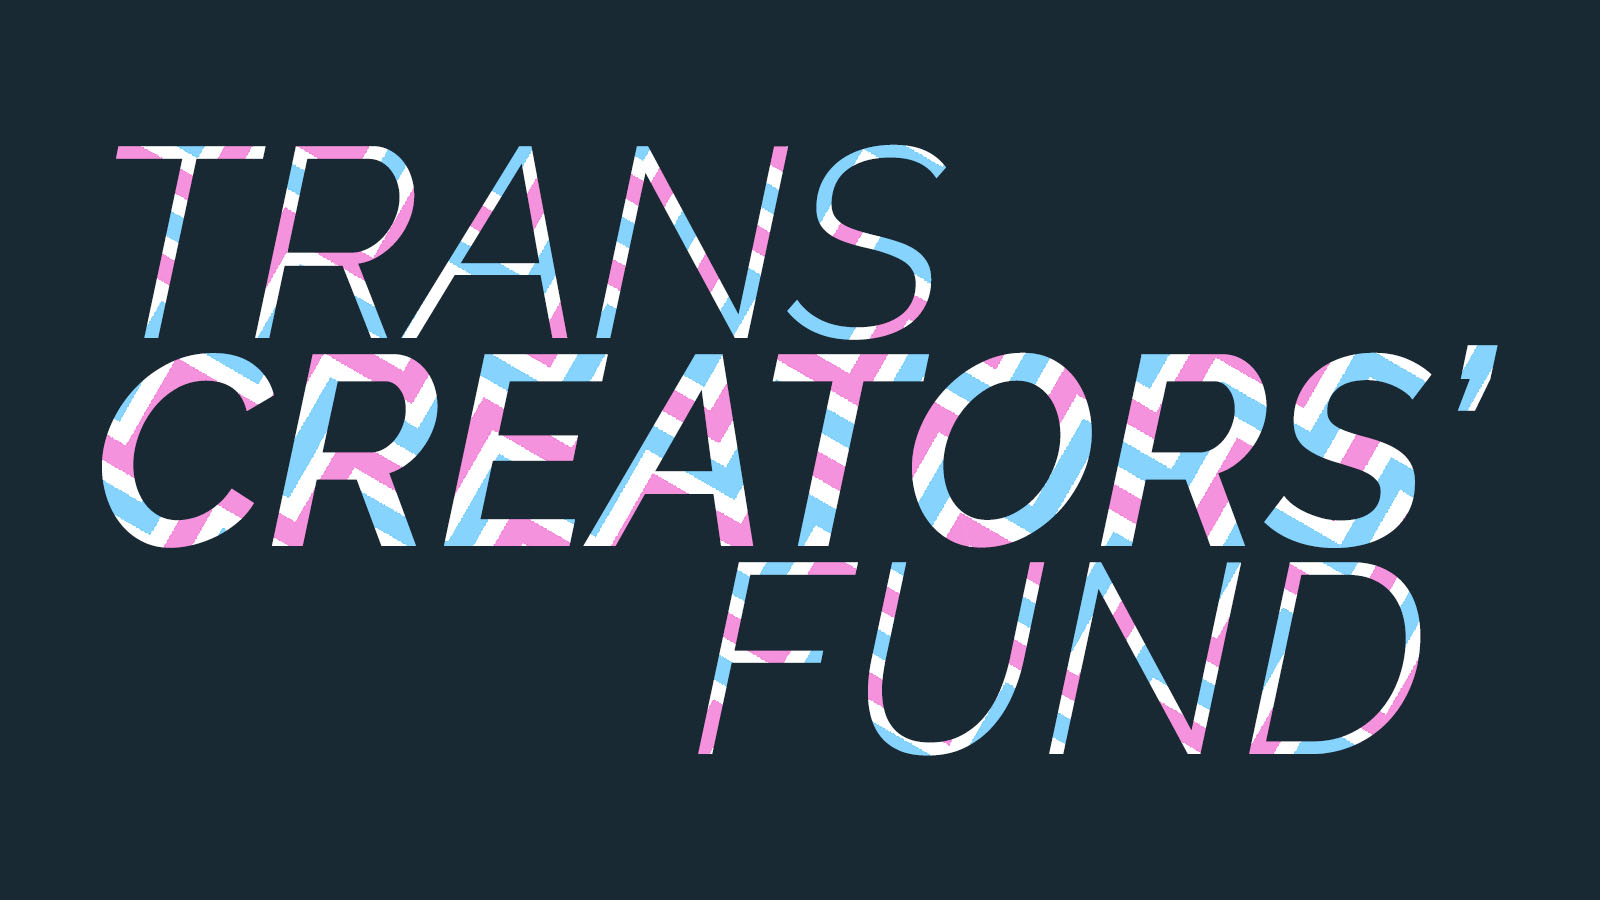 This project is made possible by the Trans Creators' Fund - Learn all about them here!